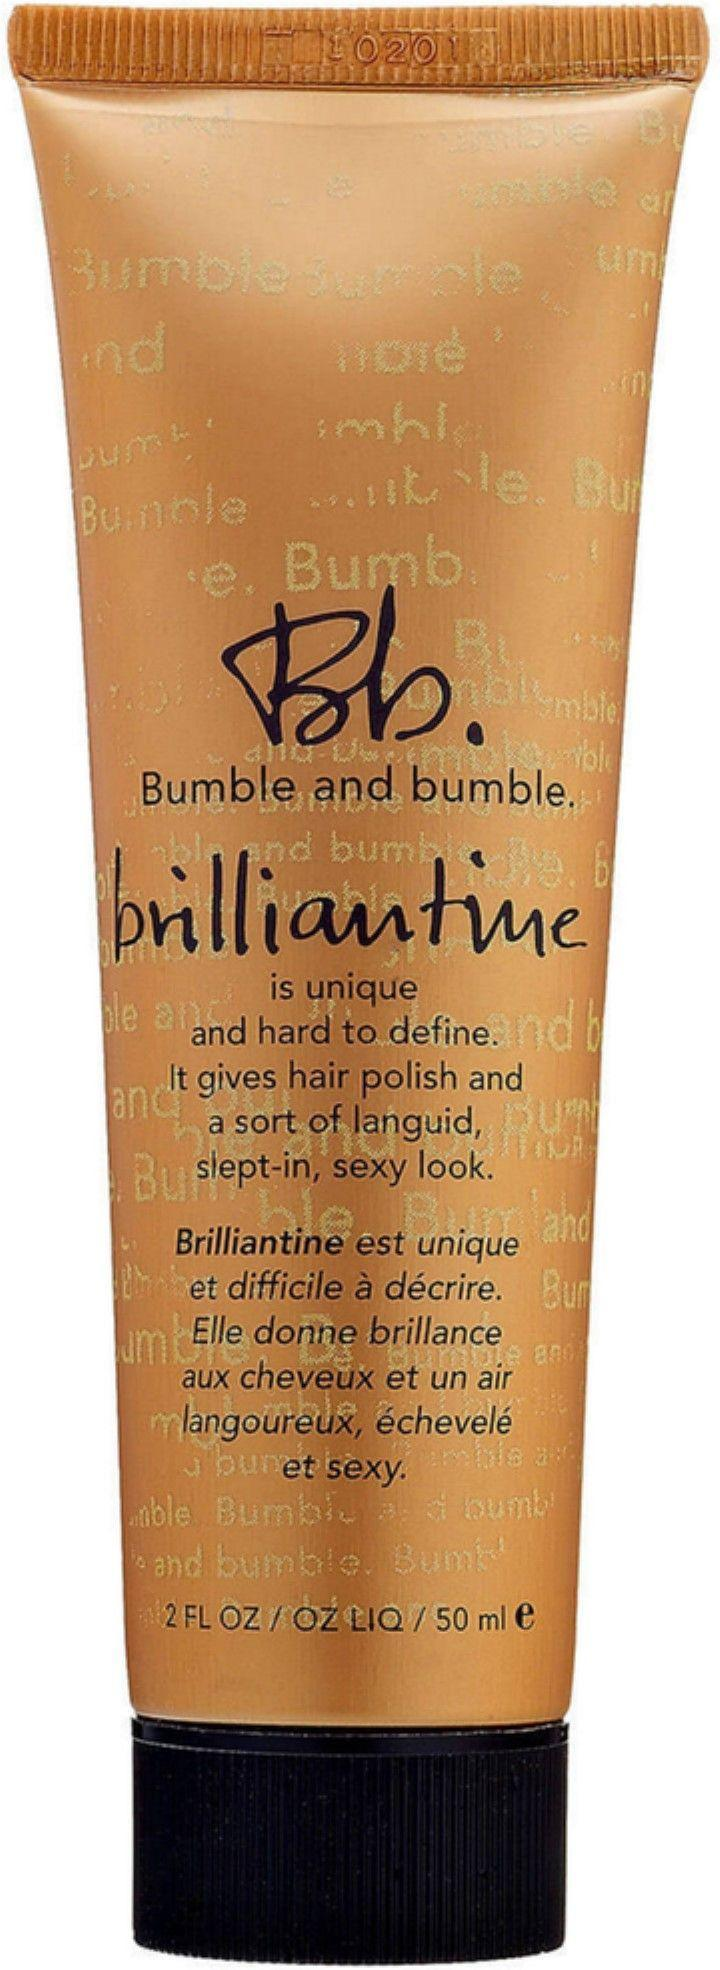 "<p>This styling cream somehow gives hair a polished, yet slept-in look with separation and extra shine. There's a reason our readers keep buying this stuff — and we can't keep it in stock in our beauty closet, either.</p><br><br><strong>Bumble and bumble</strong> Brilliantine, $24, available at <a href=""https://www.sephora.com/product/brilliantine-P280544#locklink"" rel=""nofollow noopener"" target=""_blank"" data-ylk=""slk:Sephora"" class=""link rapid-noclick-resp"">Sephora</a>"